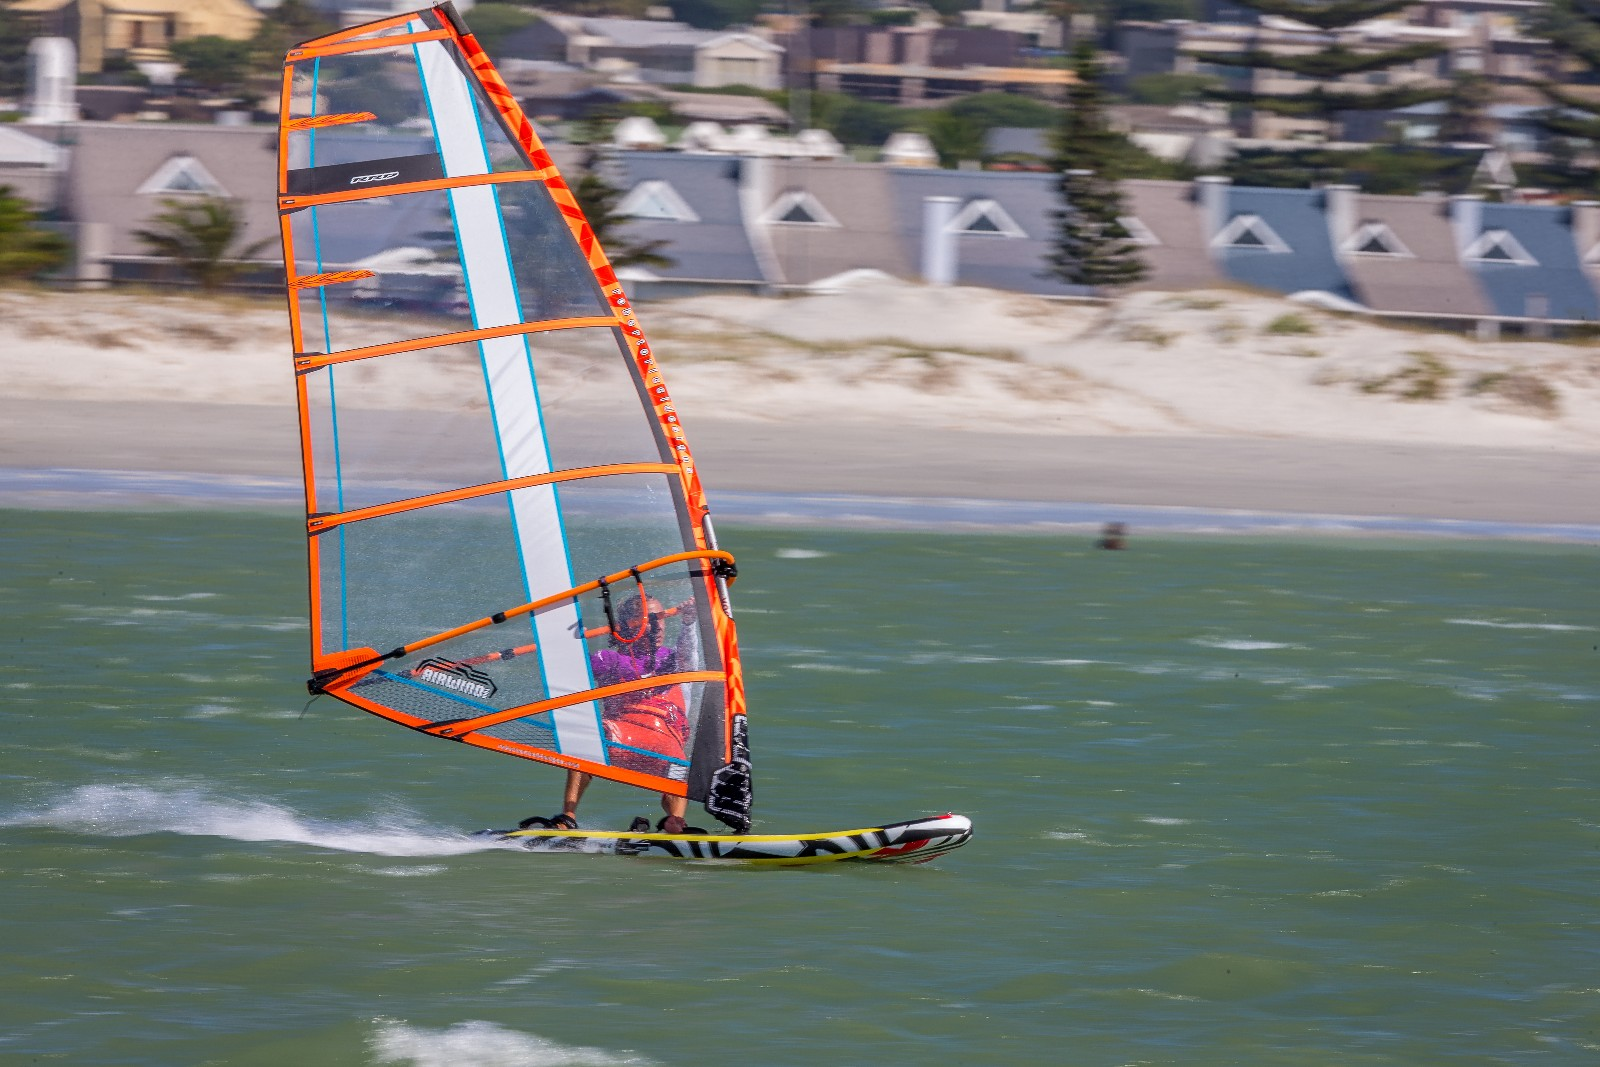 airwindsurf-freeride_28120845683_o